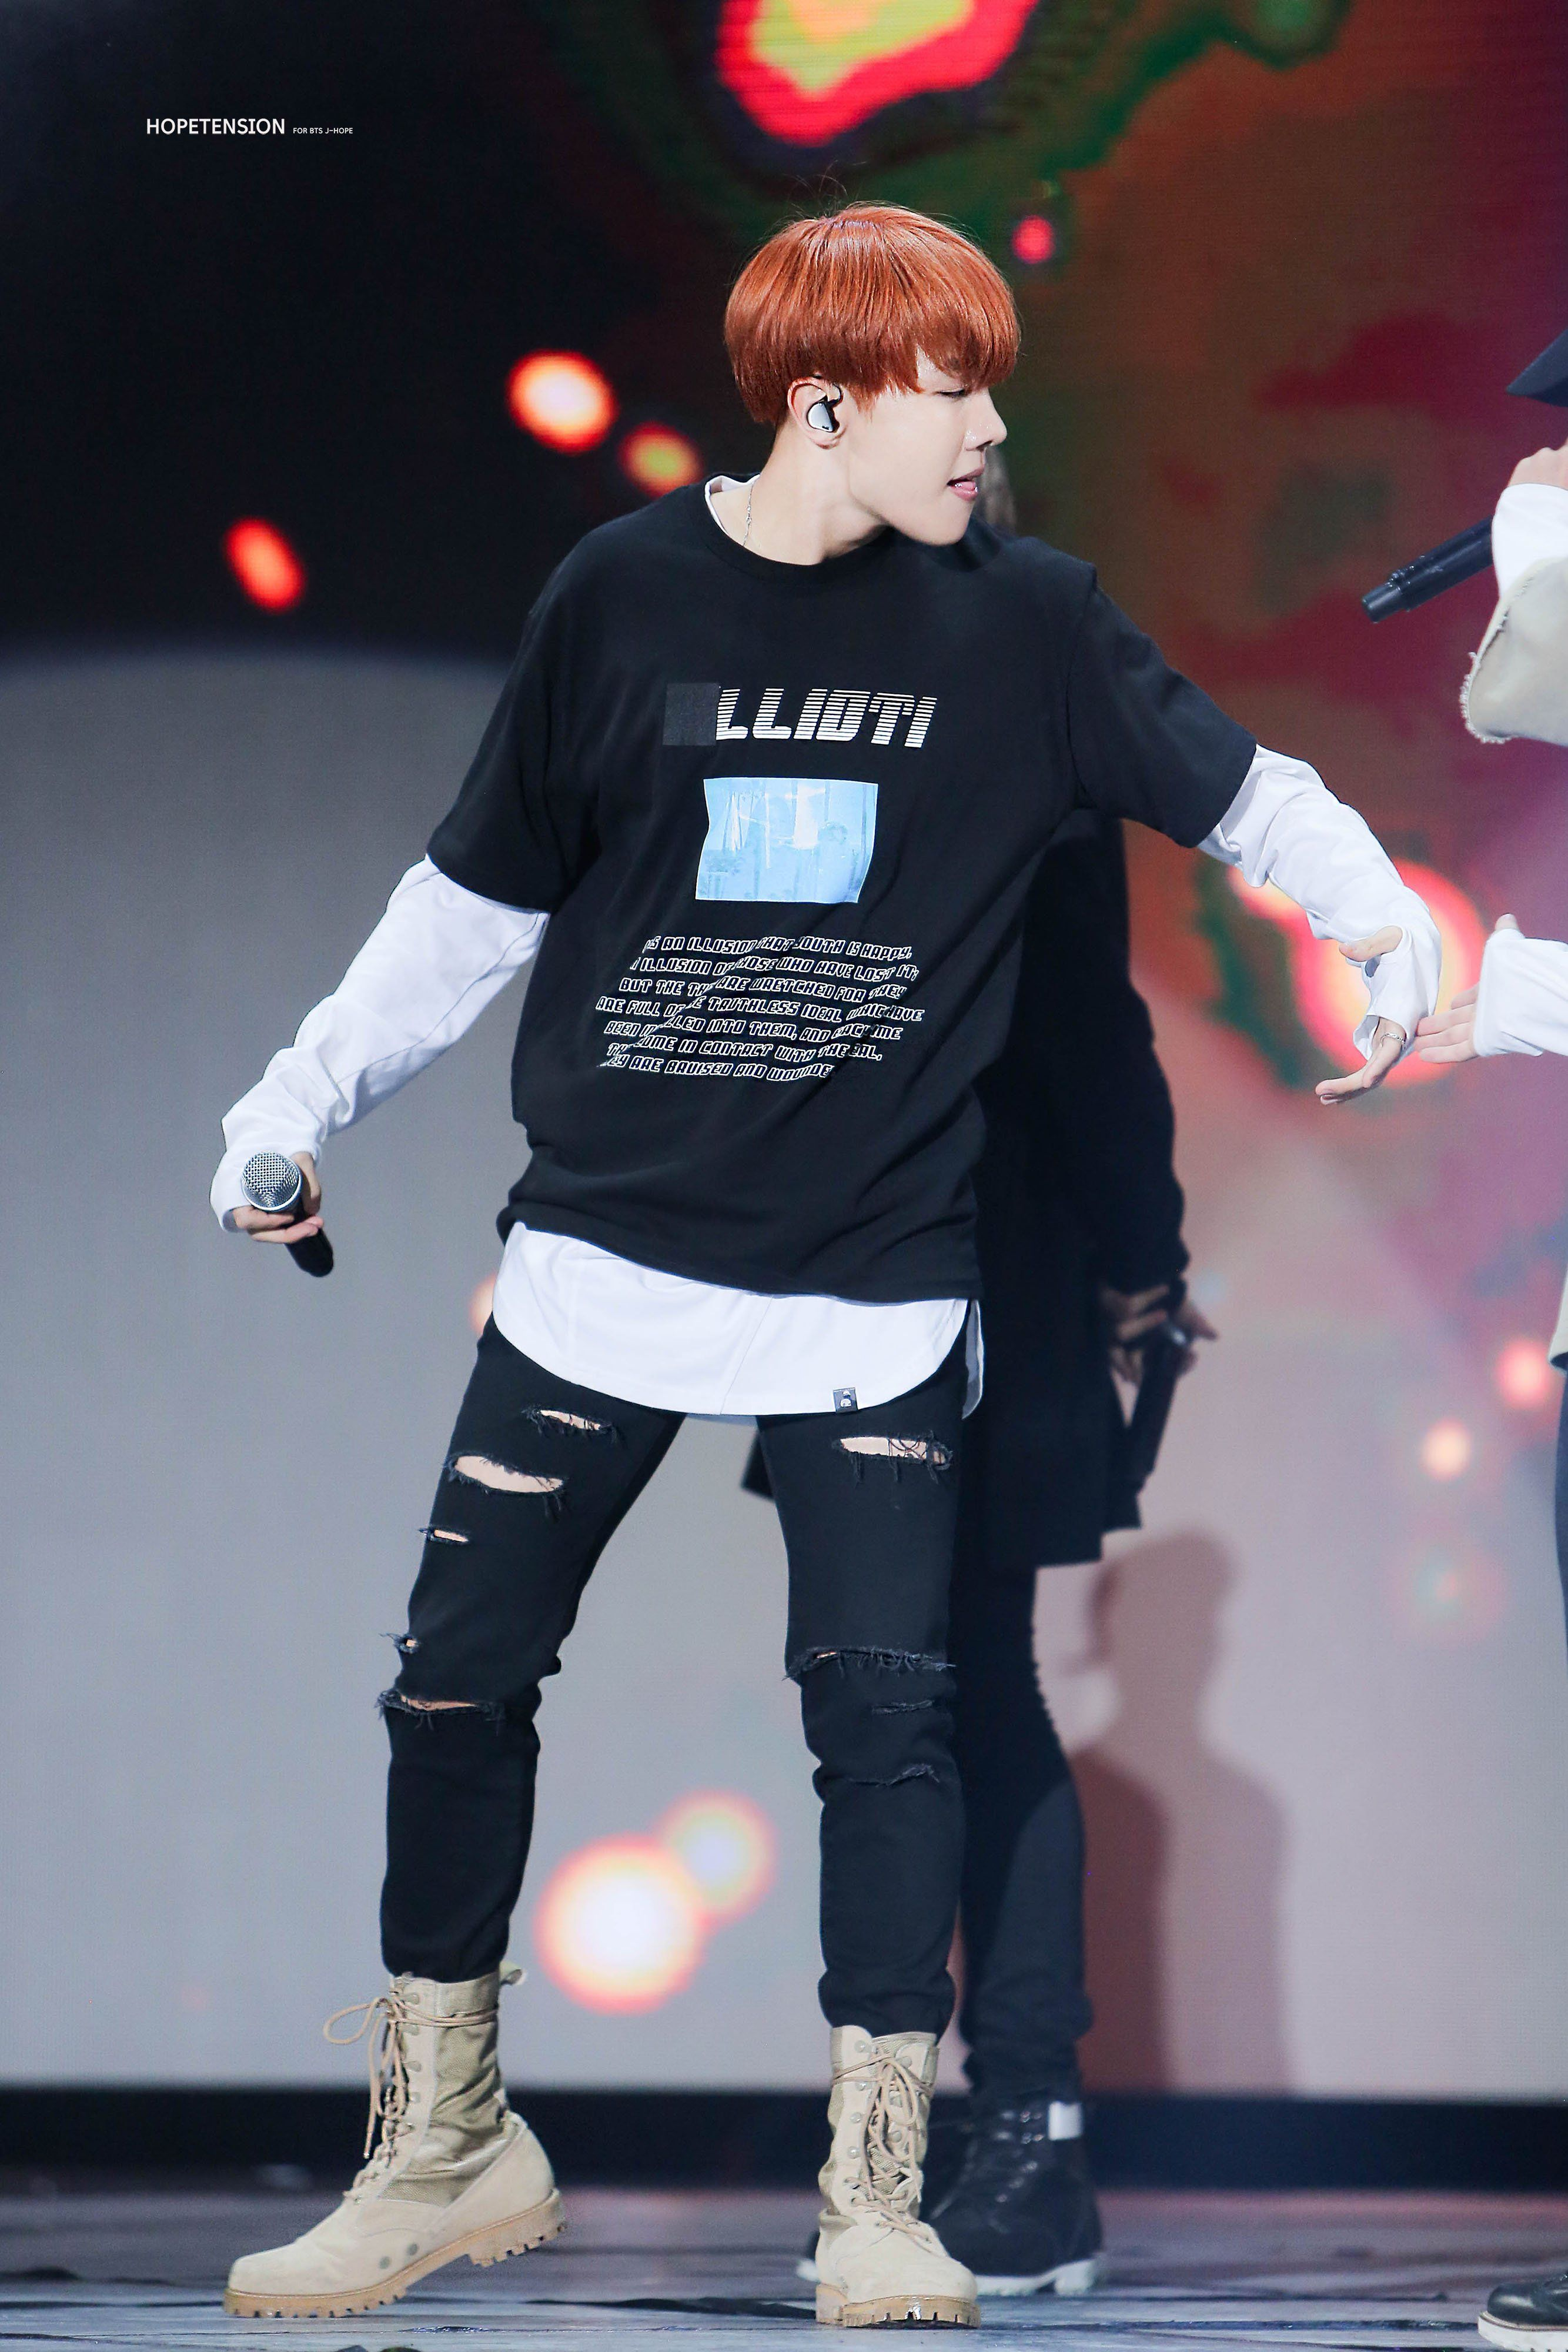 © HOPE TENSION | Do not edit.